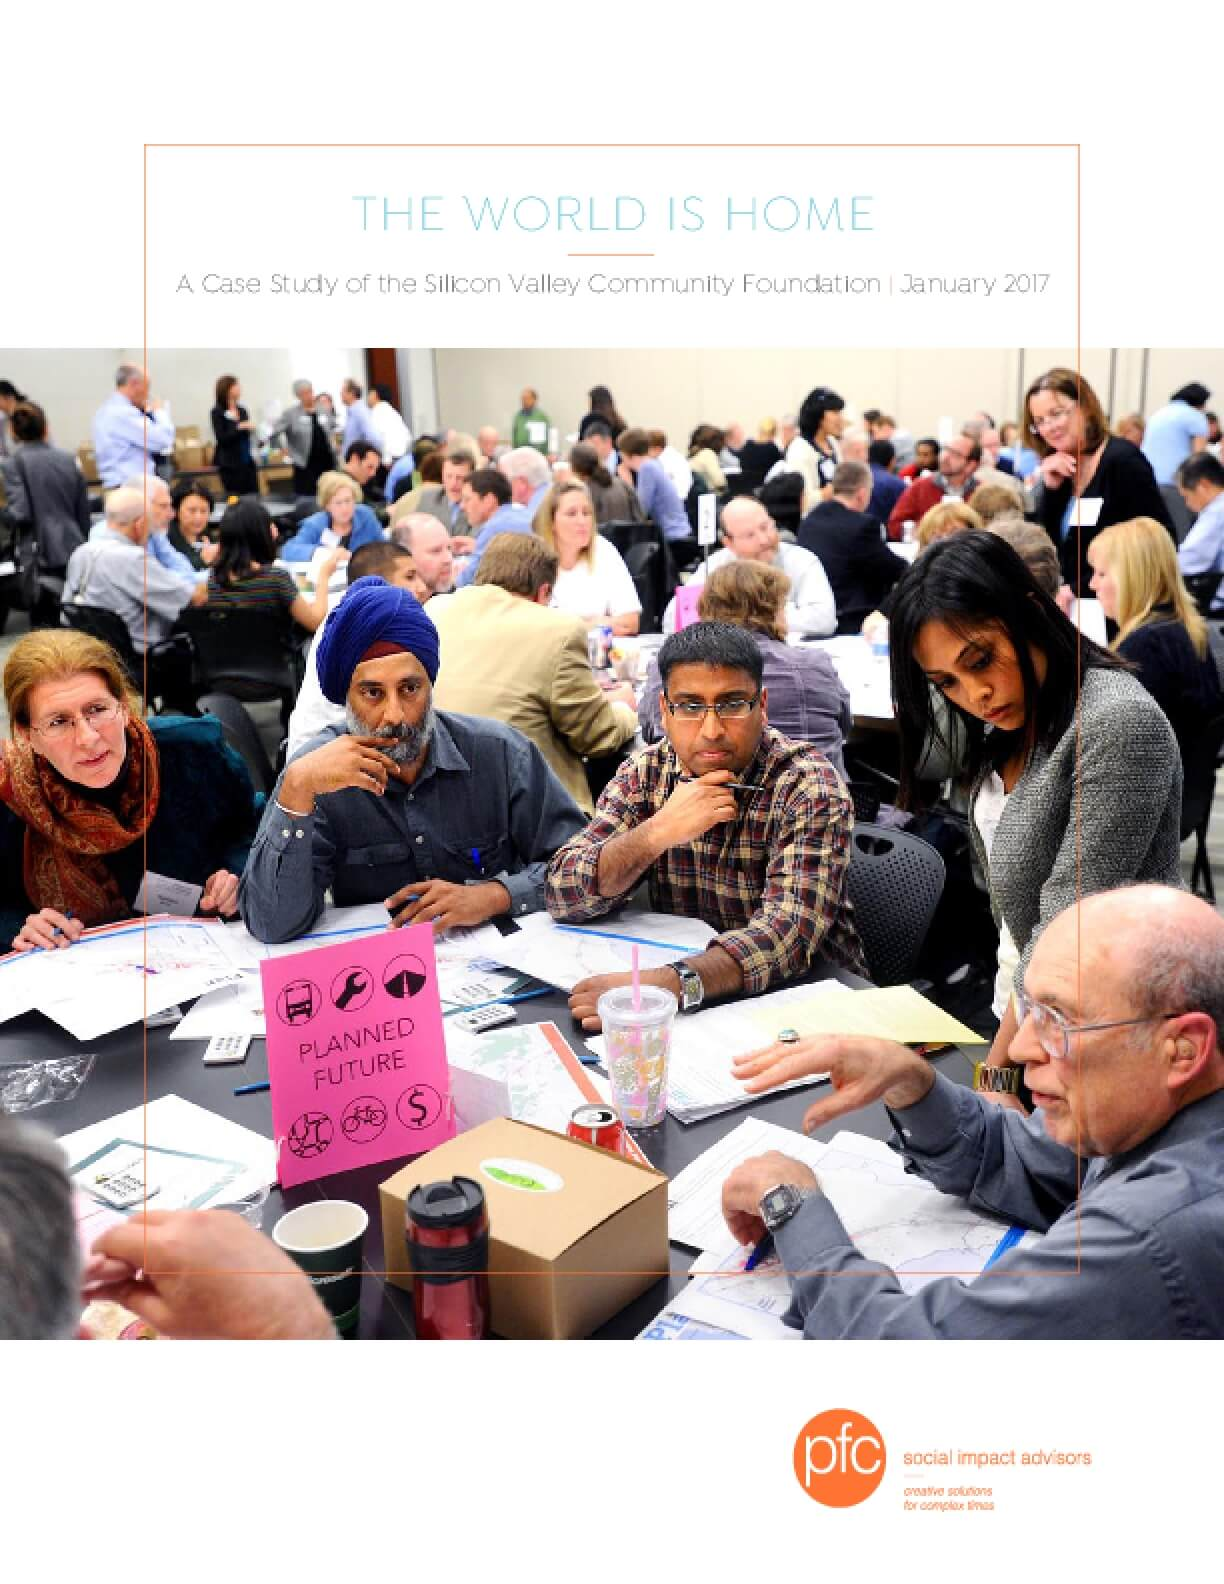 The World is Home: A Case Study of the Silicon Valley Community Foundation